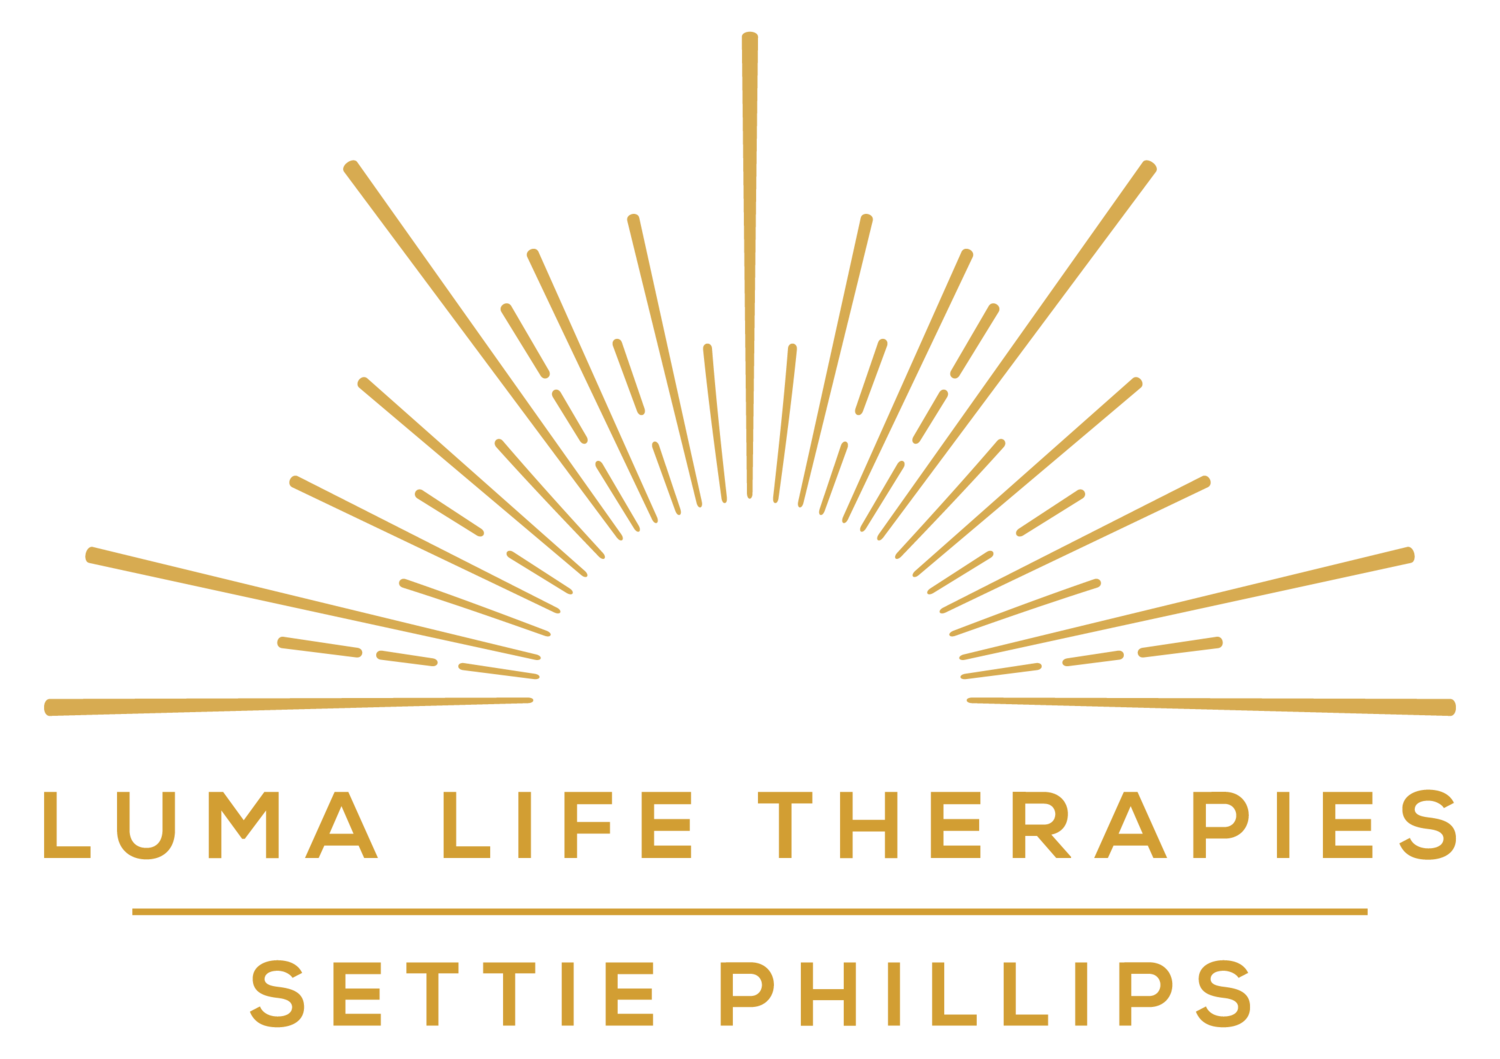 luma life therapies